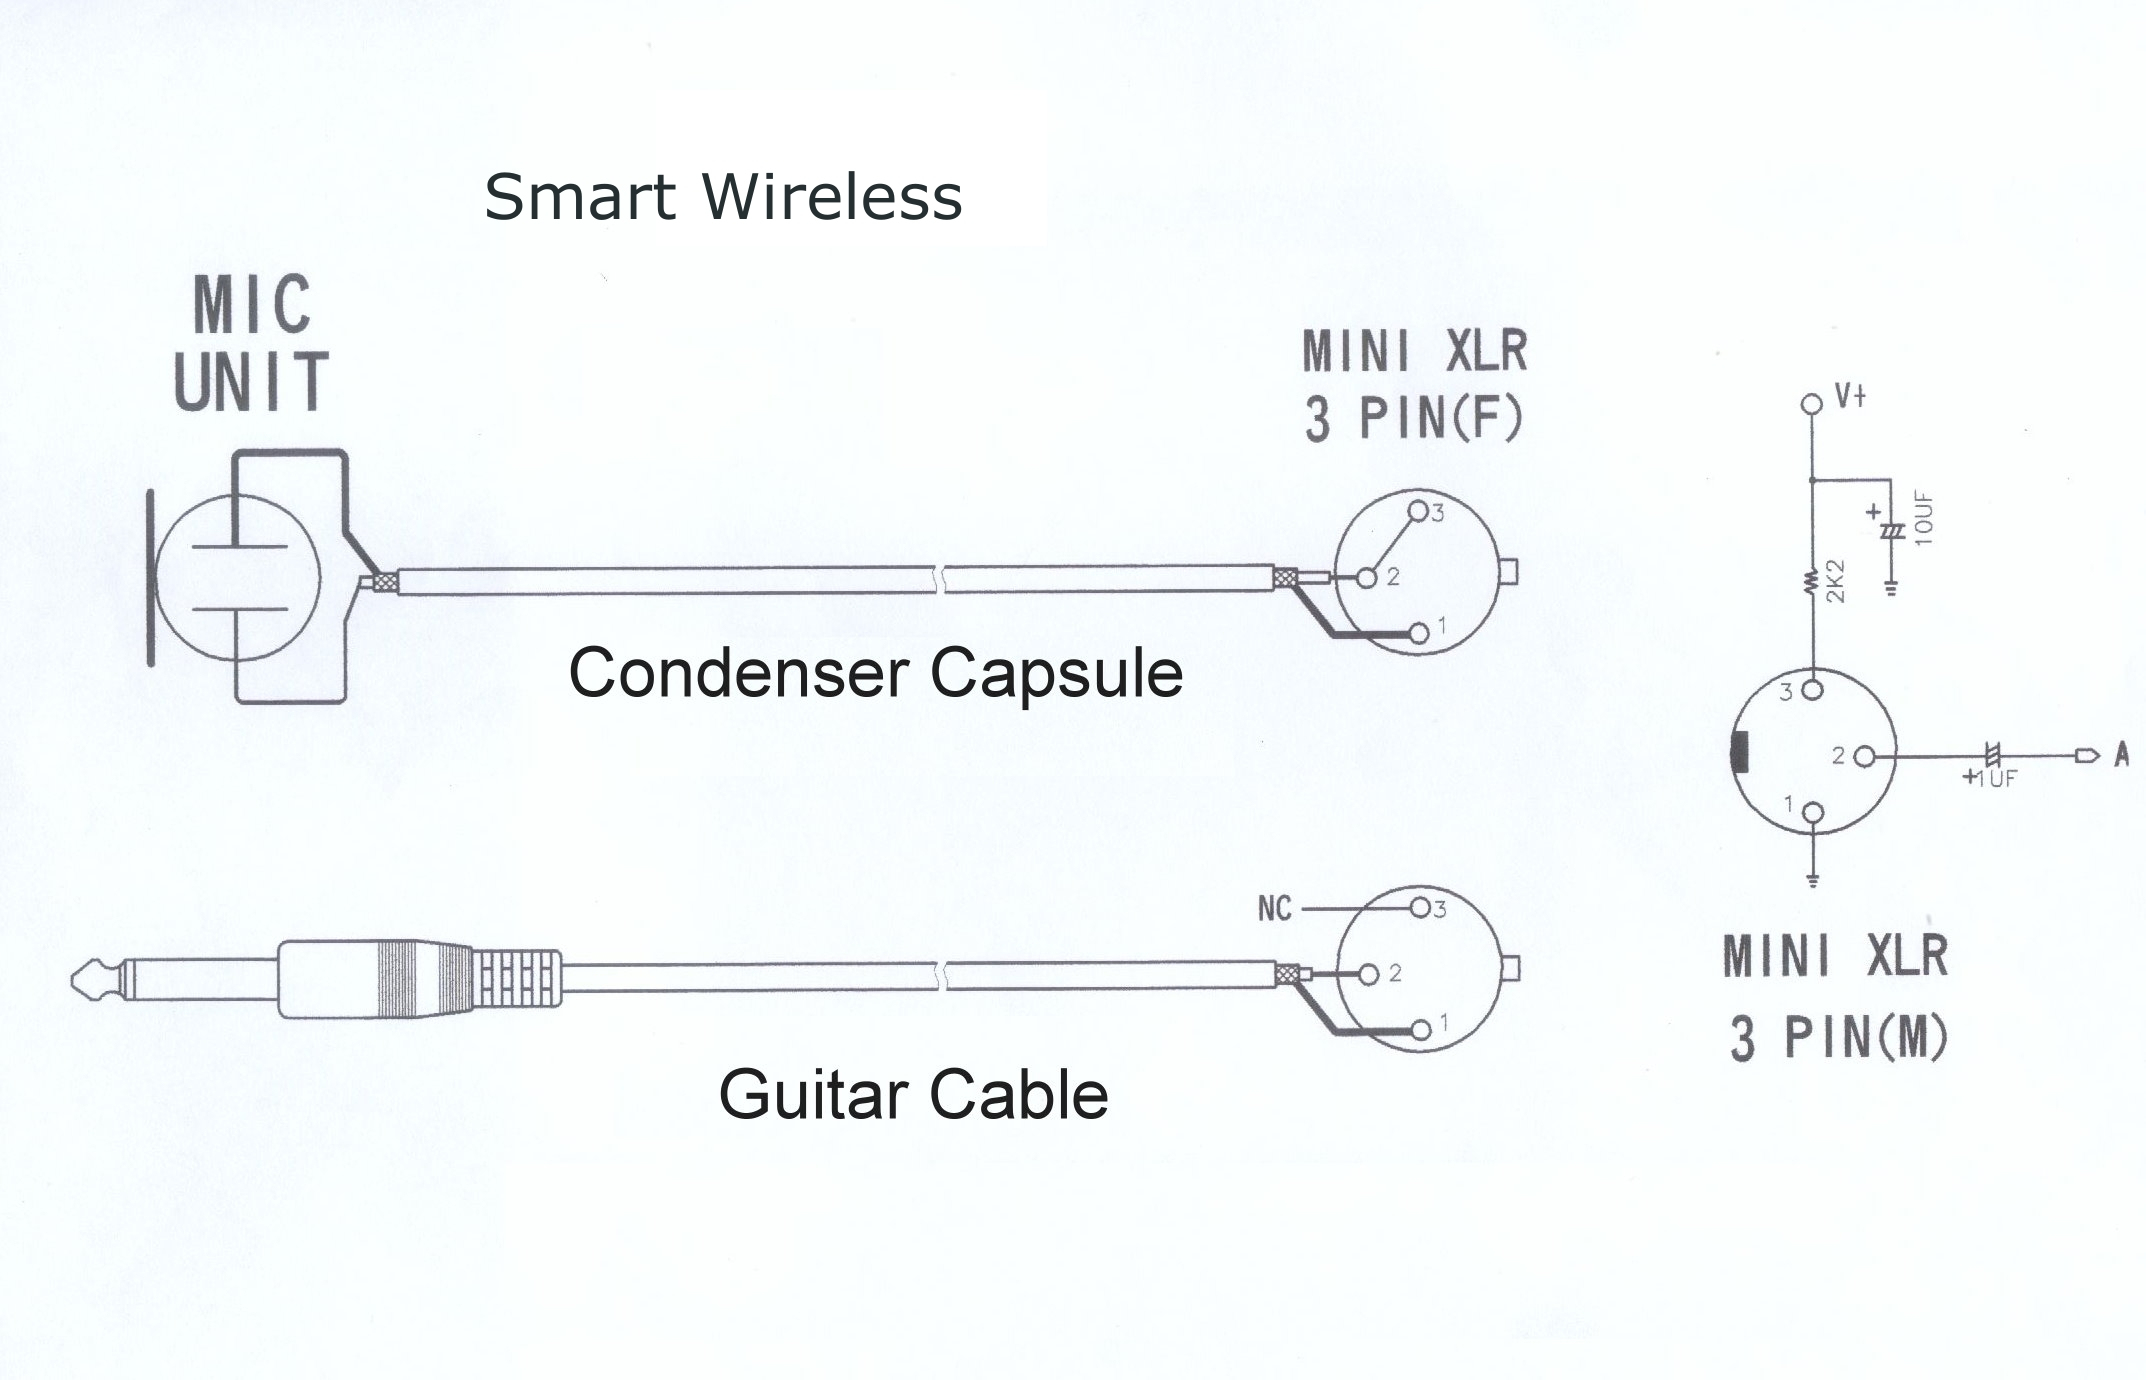 3 Pin Xlr Wiring Diagram, Cable Wiring, Etc. - Usb Wiring Diagram Clear White Wires